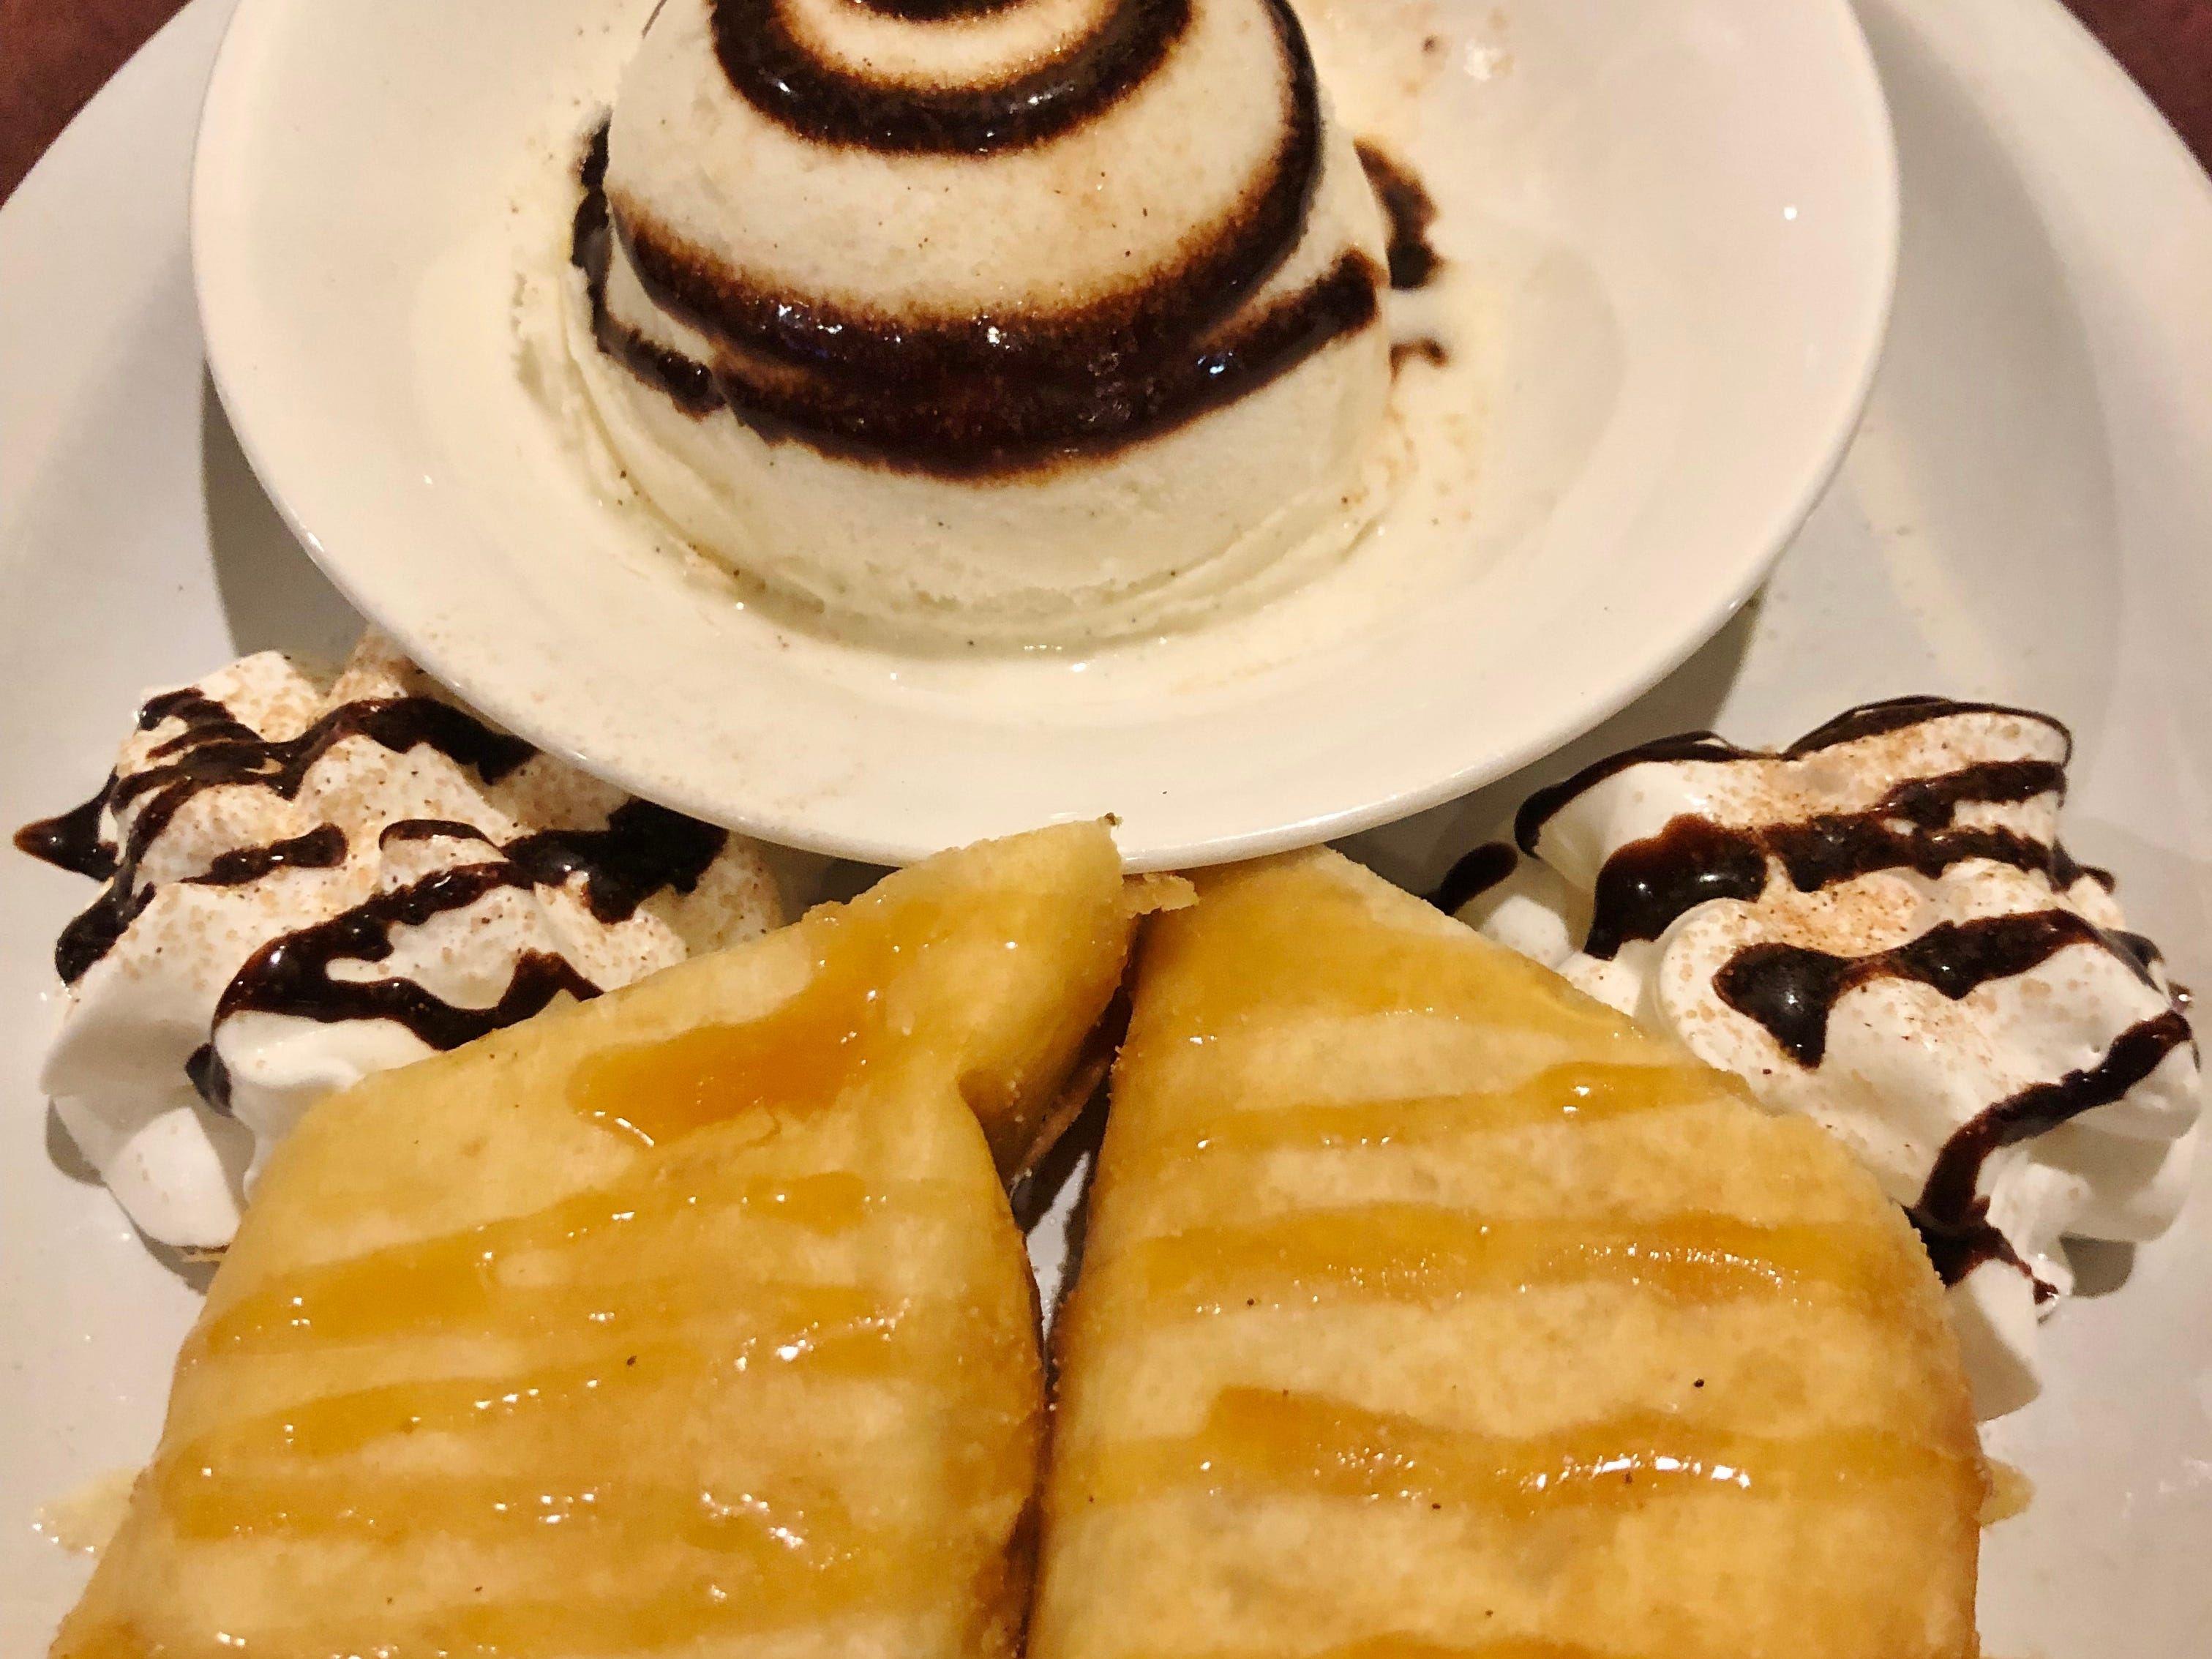 Casa Azteca's cheesecake chimichanga was a sweet, deep fried tortilla shell stuffed with creamy cheesecake filling and drizzled with caramel sauce and two dollops of whipped cream. On the side was a scoop of vanilla ice cream with a swirl of chocolate sauce.